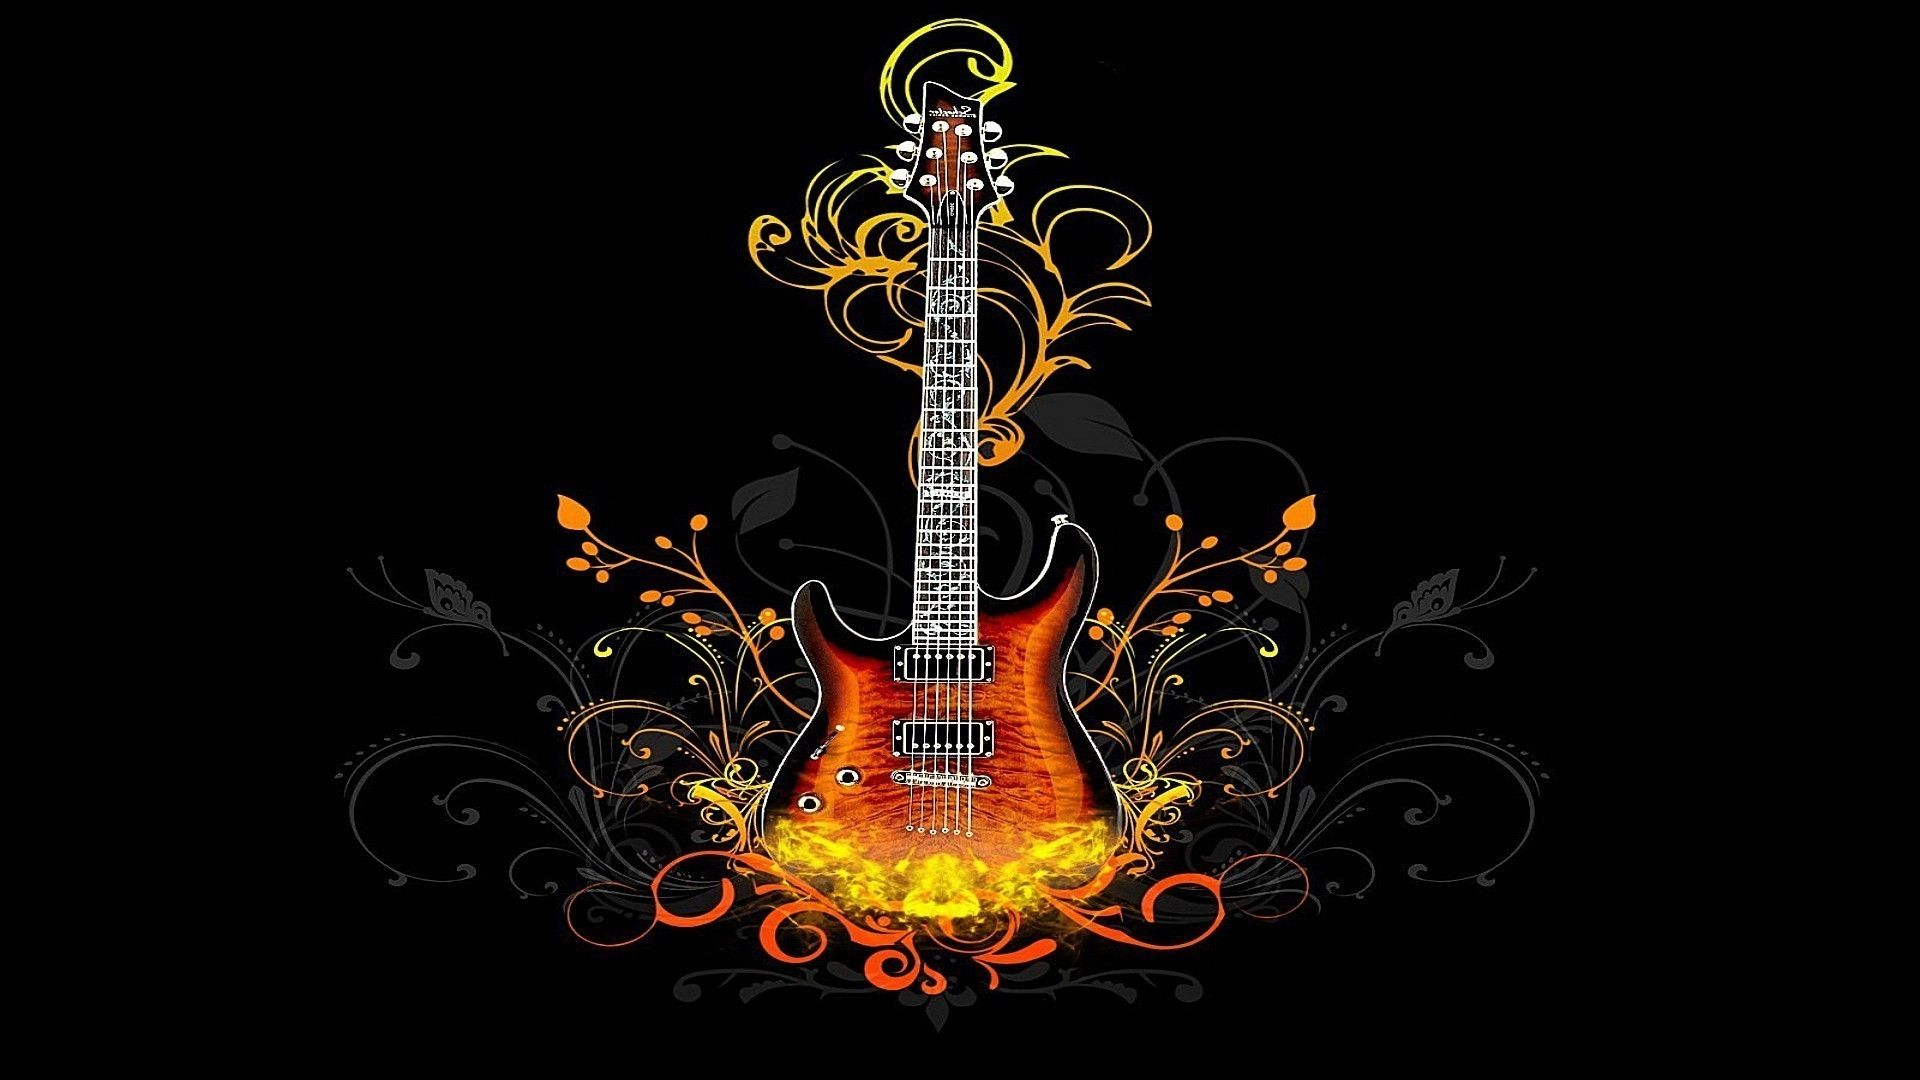 Fire Guitar, PC Wallpaper HD